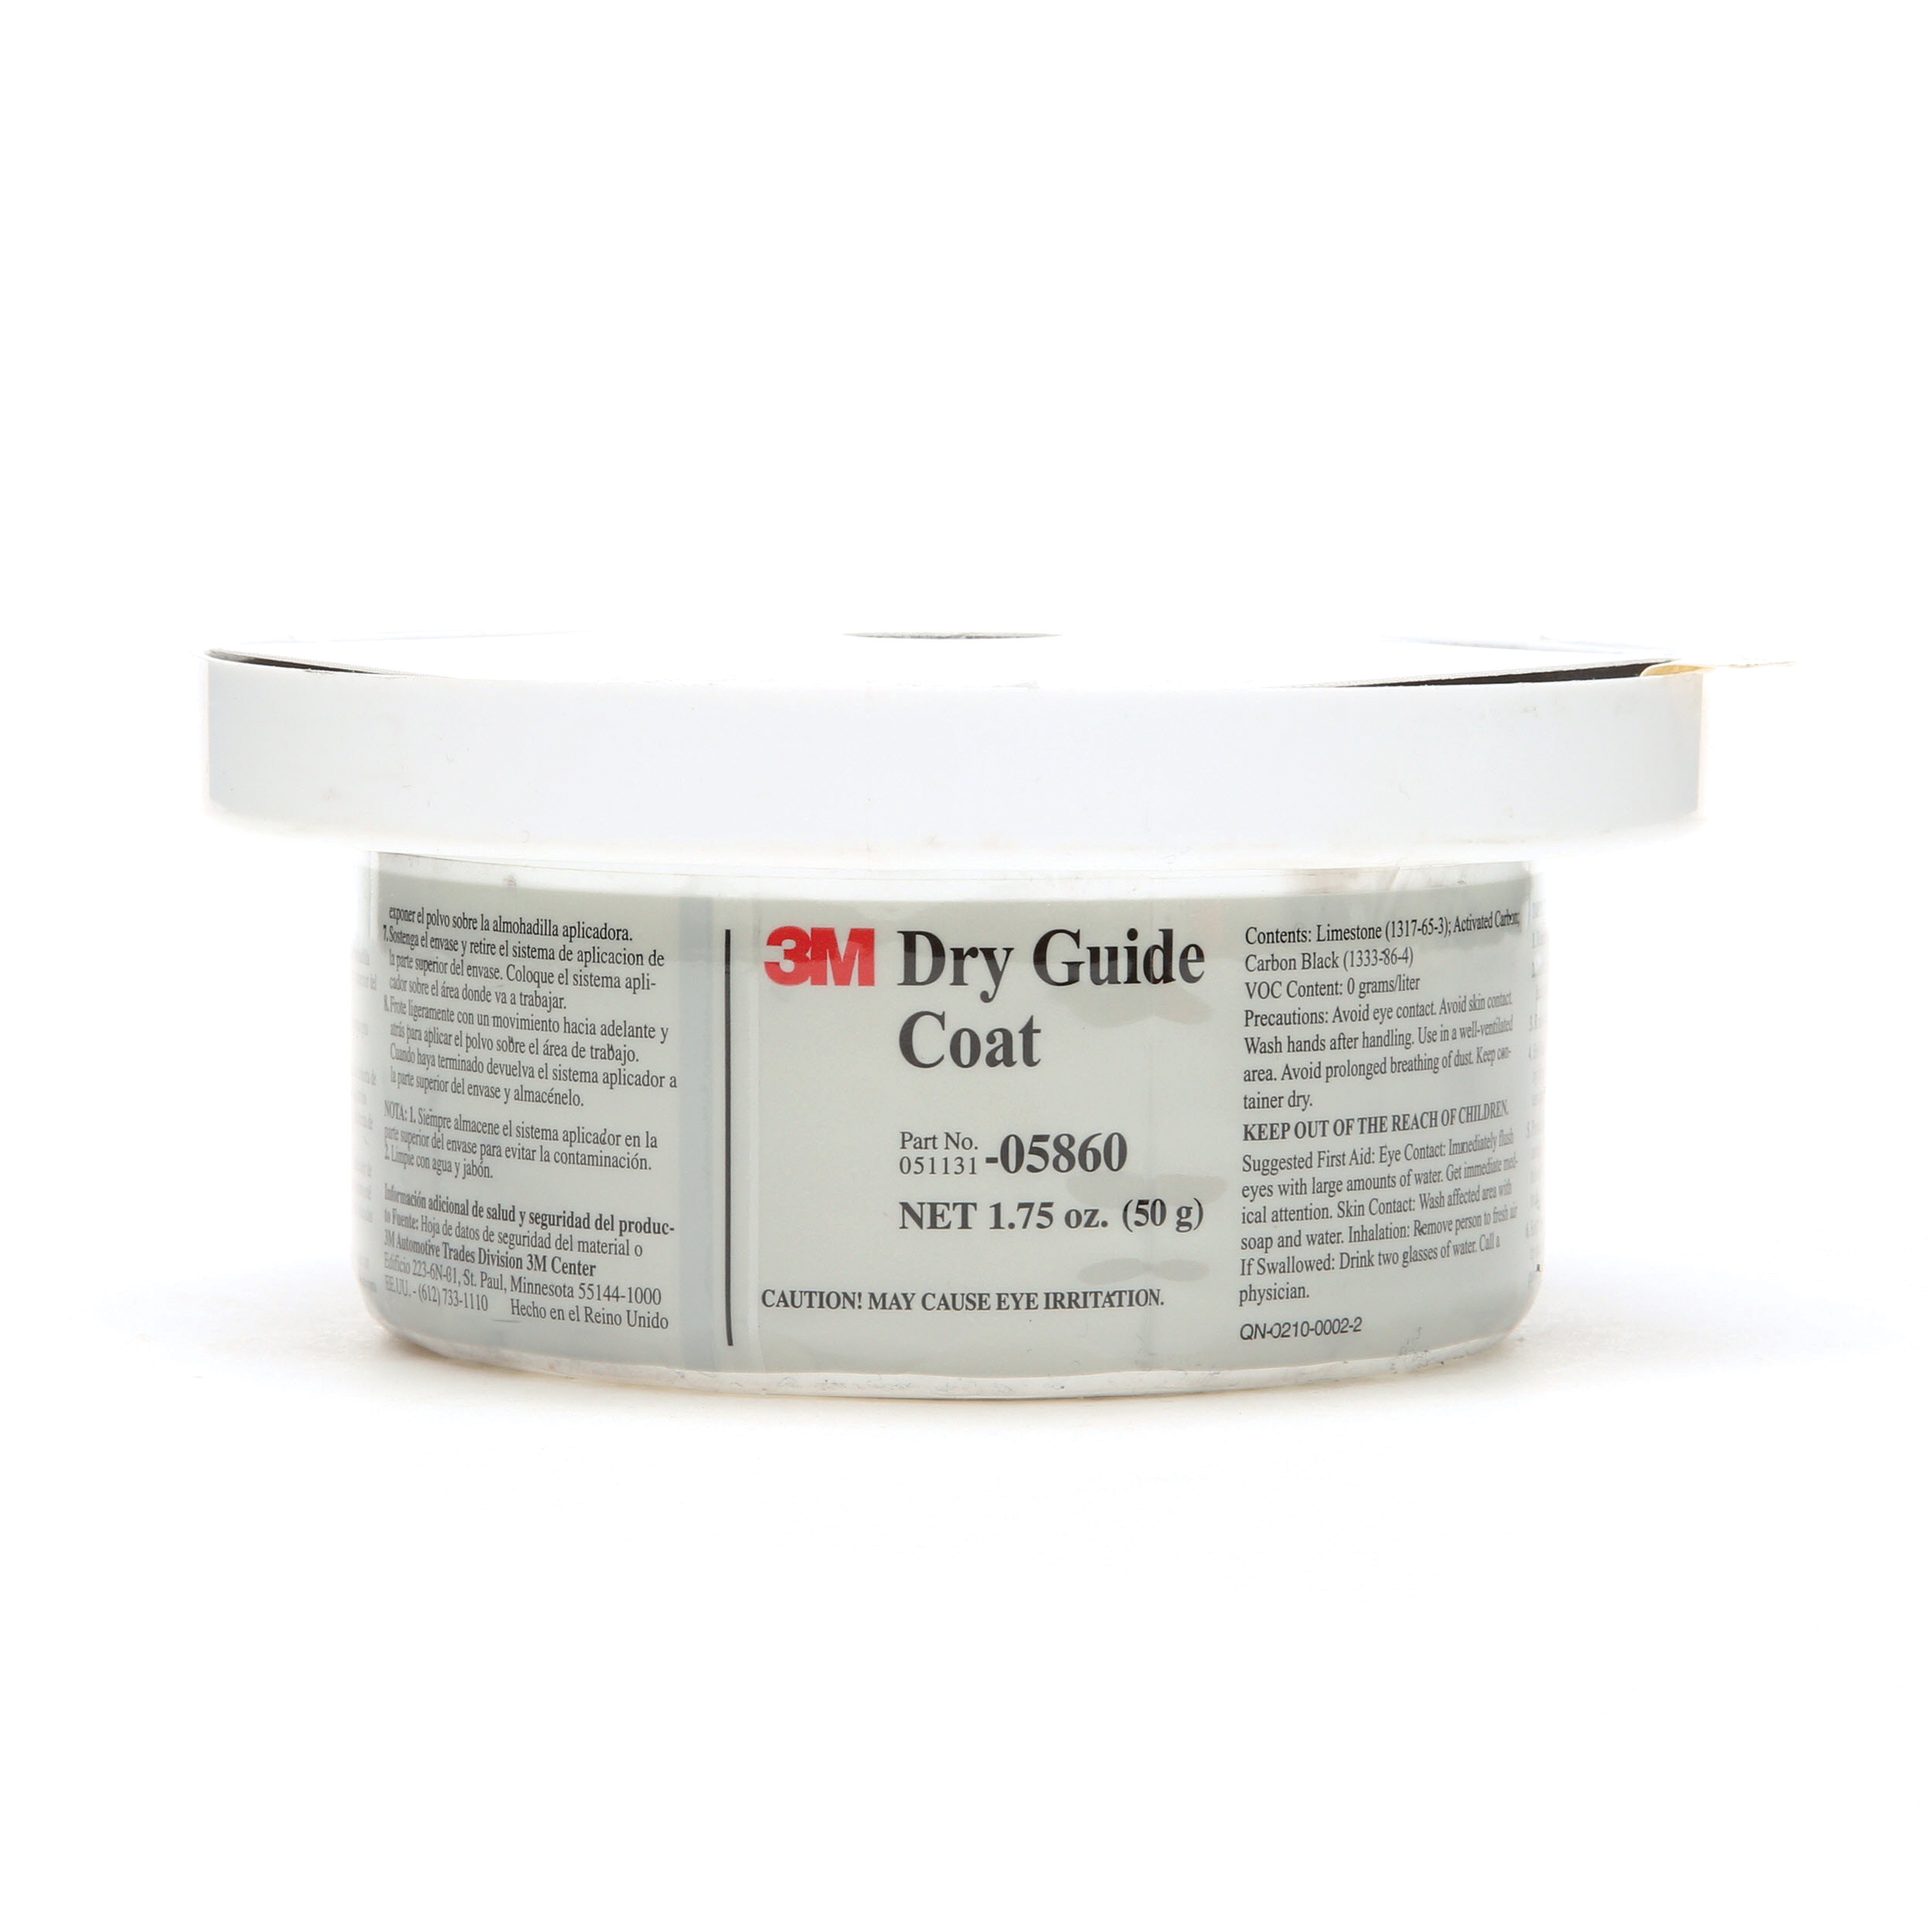 3M™ 051131-05860 Dry Guide Coat, 50 g, Powder, Dark Gray